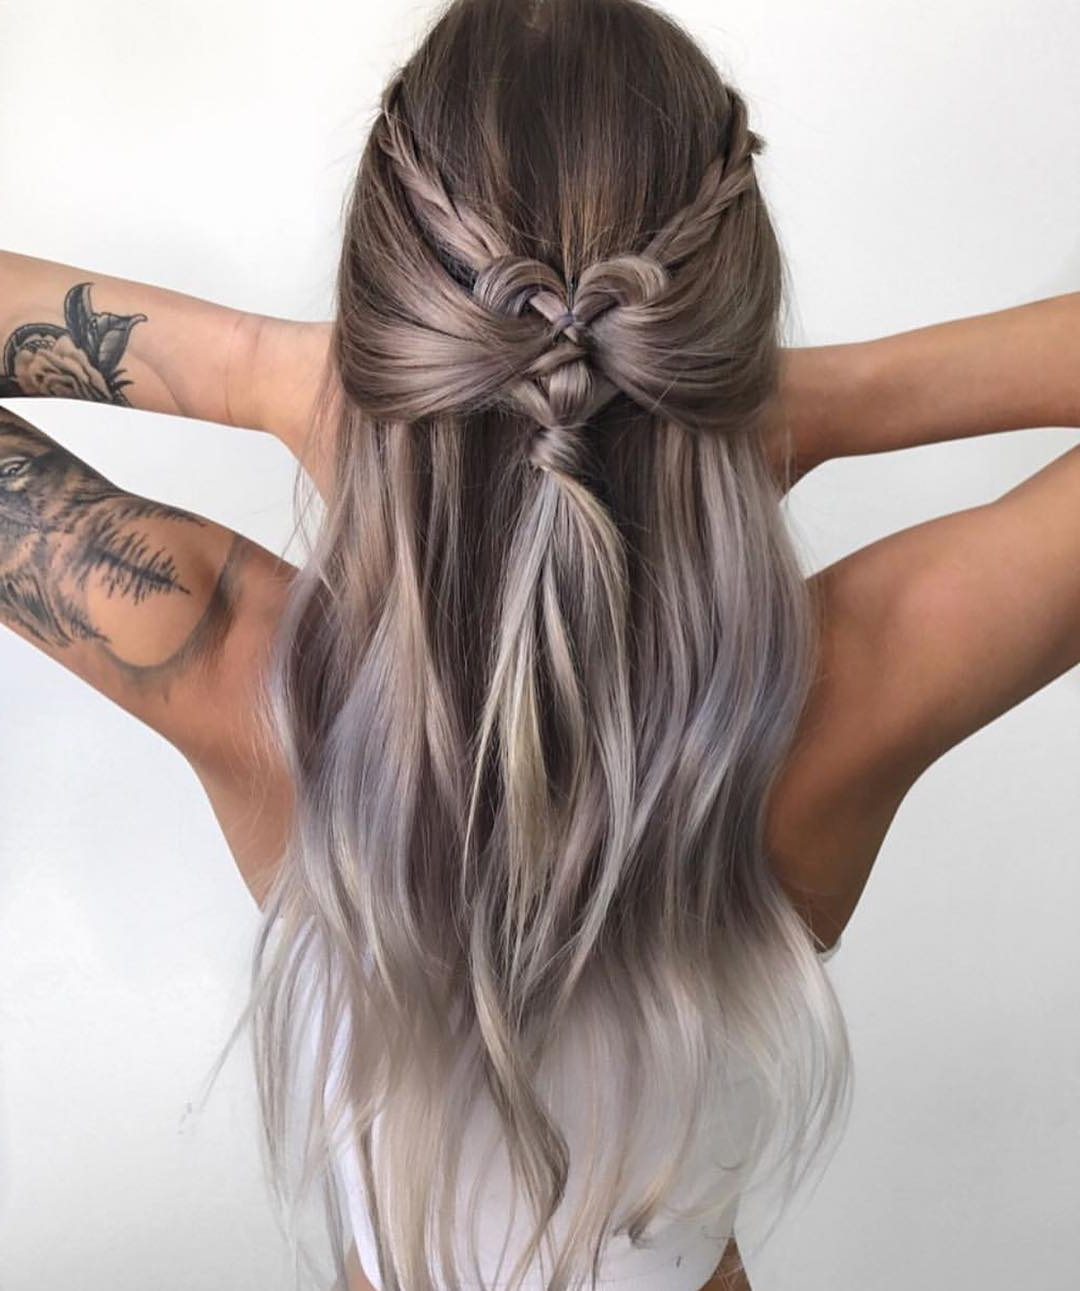 10 Braided Hairstyles For Long Hair – Weddings, Festivals & Holiday In Silver And Sophisticated Hairstyles (View 8 of 20)